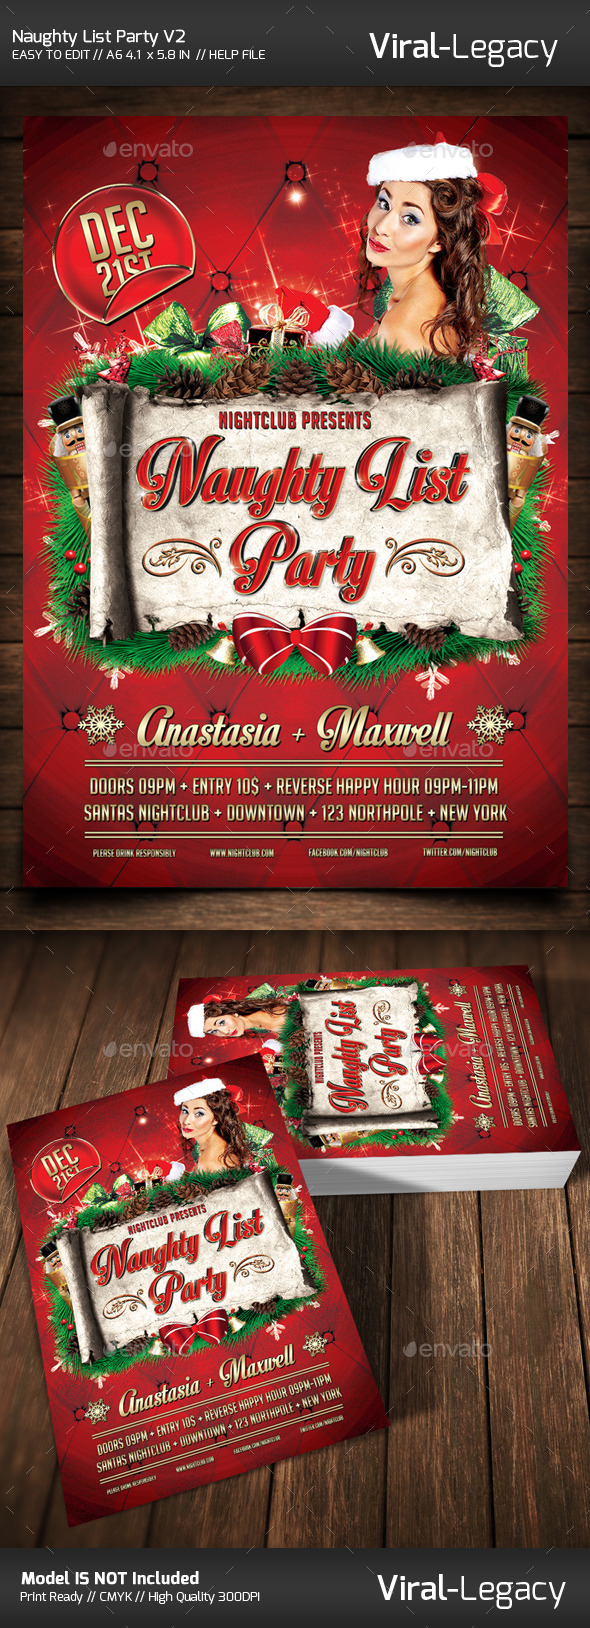 GraphicRiver The Naughty List Party V2 9526087